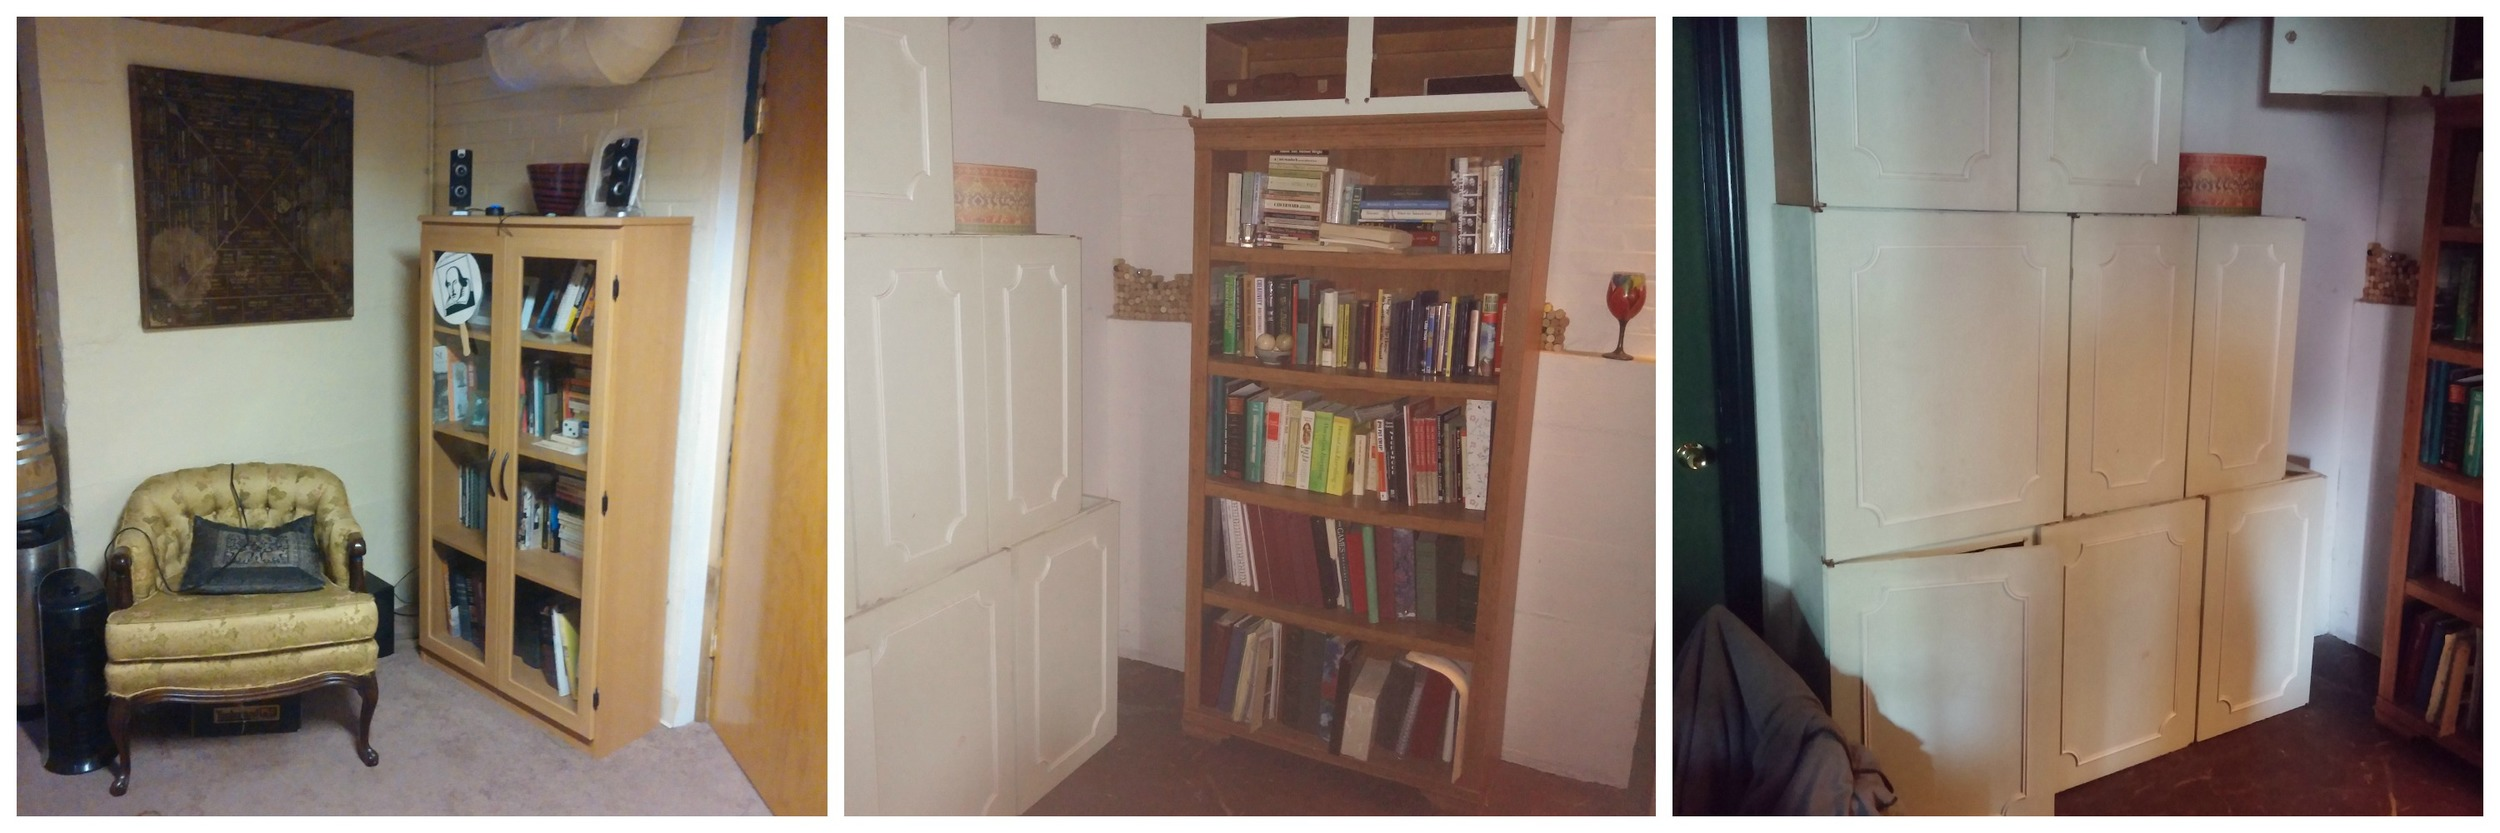 1) Where that chair is, there used to be a second bookcase. 2) One of what was two bookcases. 3) Wall o' cabinets - still some work to do, but you get the idea.